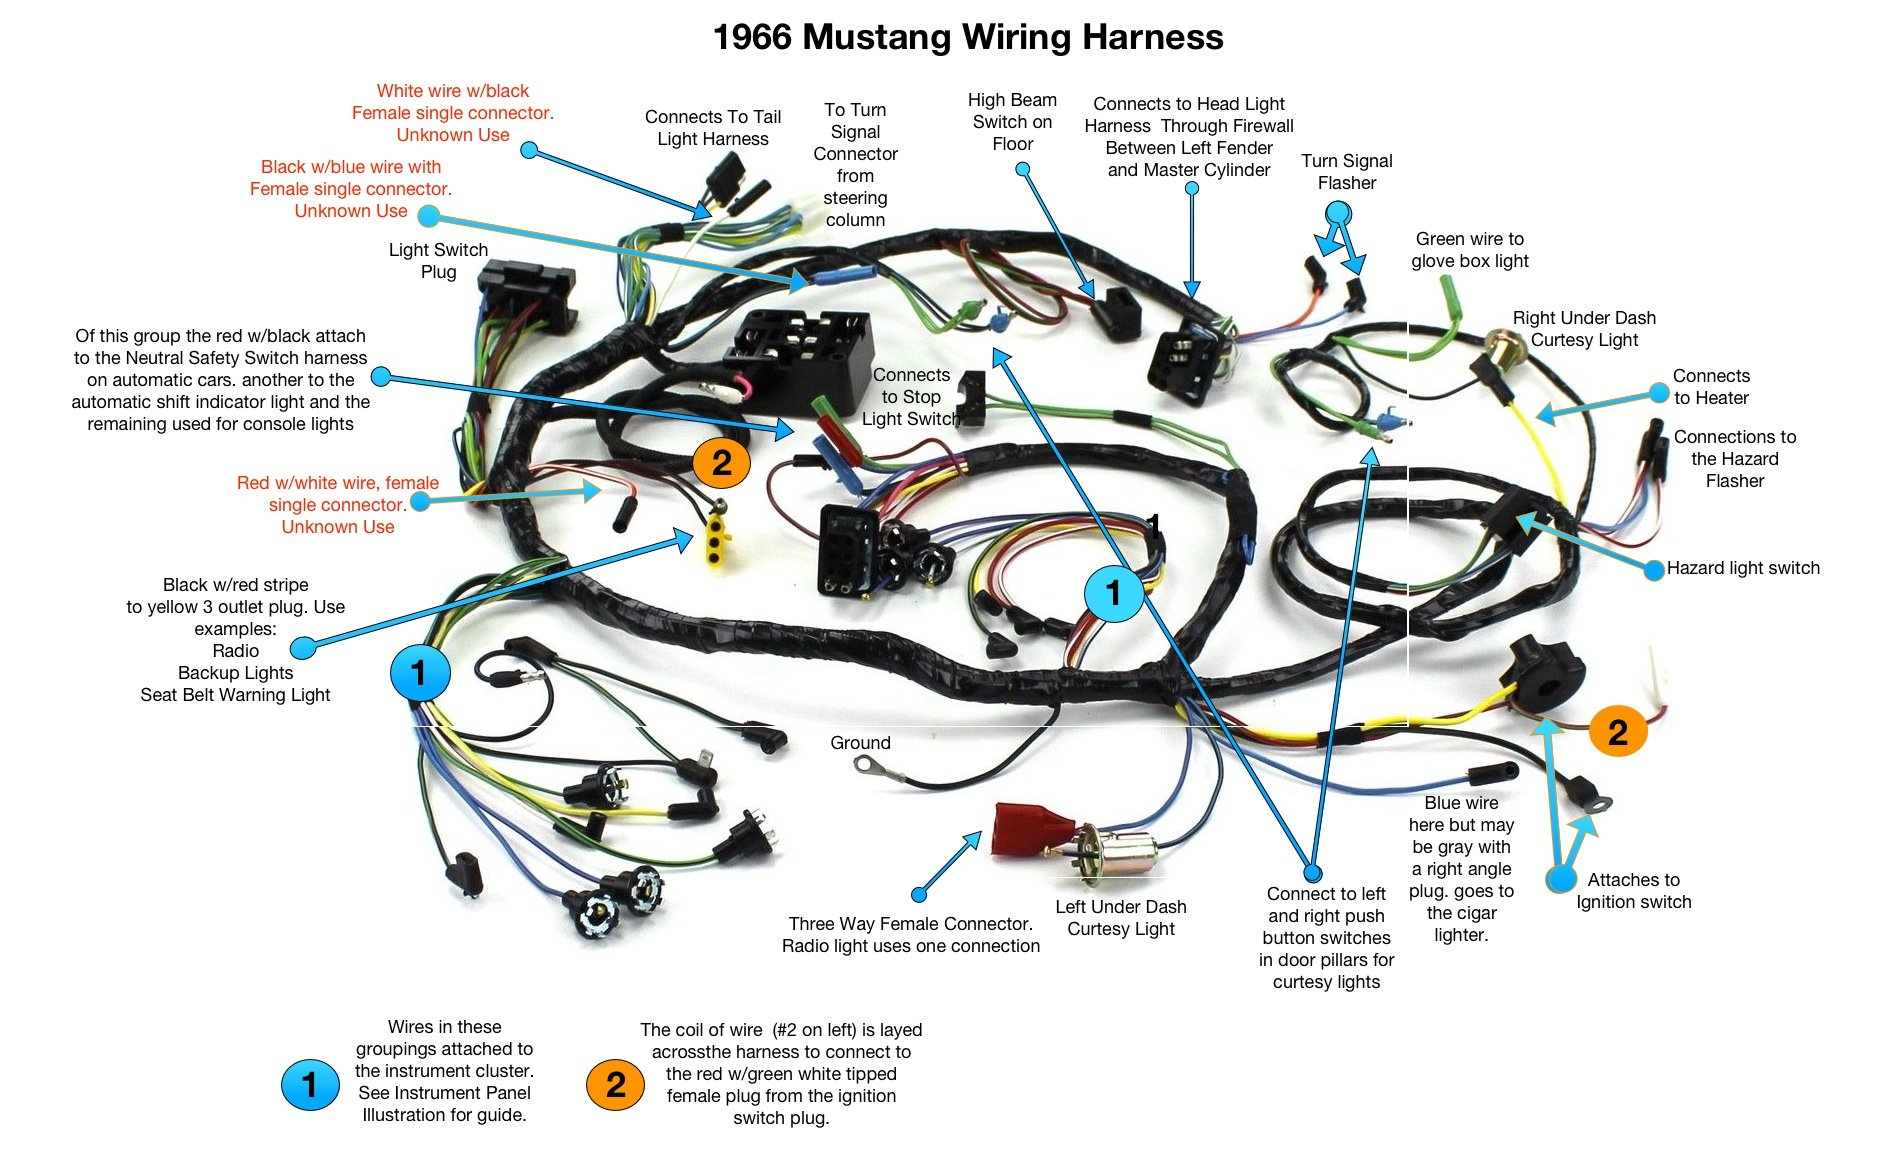 wiring harness for car wiring diagram Aircraft Electrical Harness